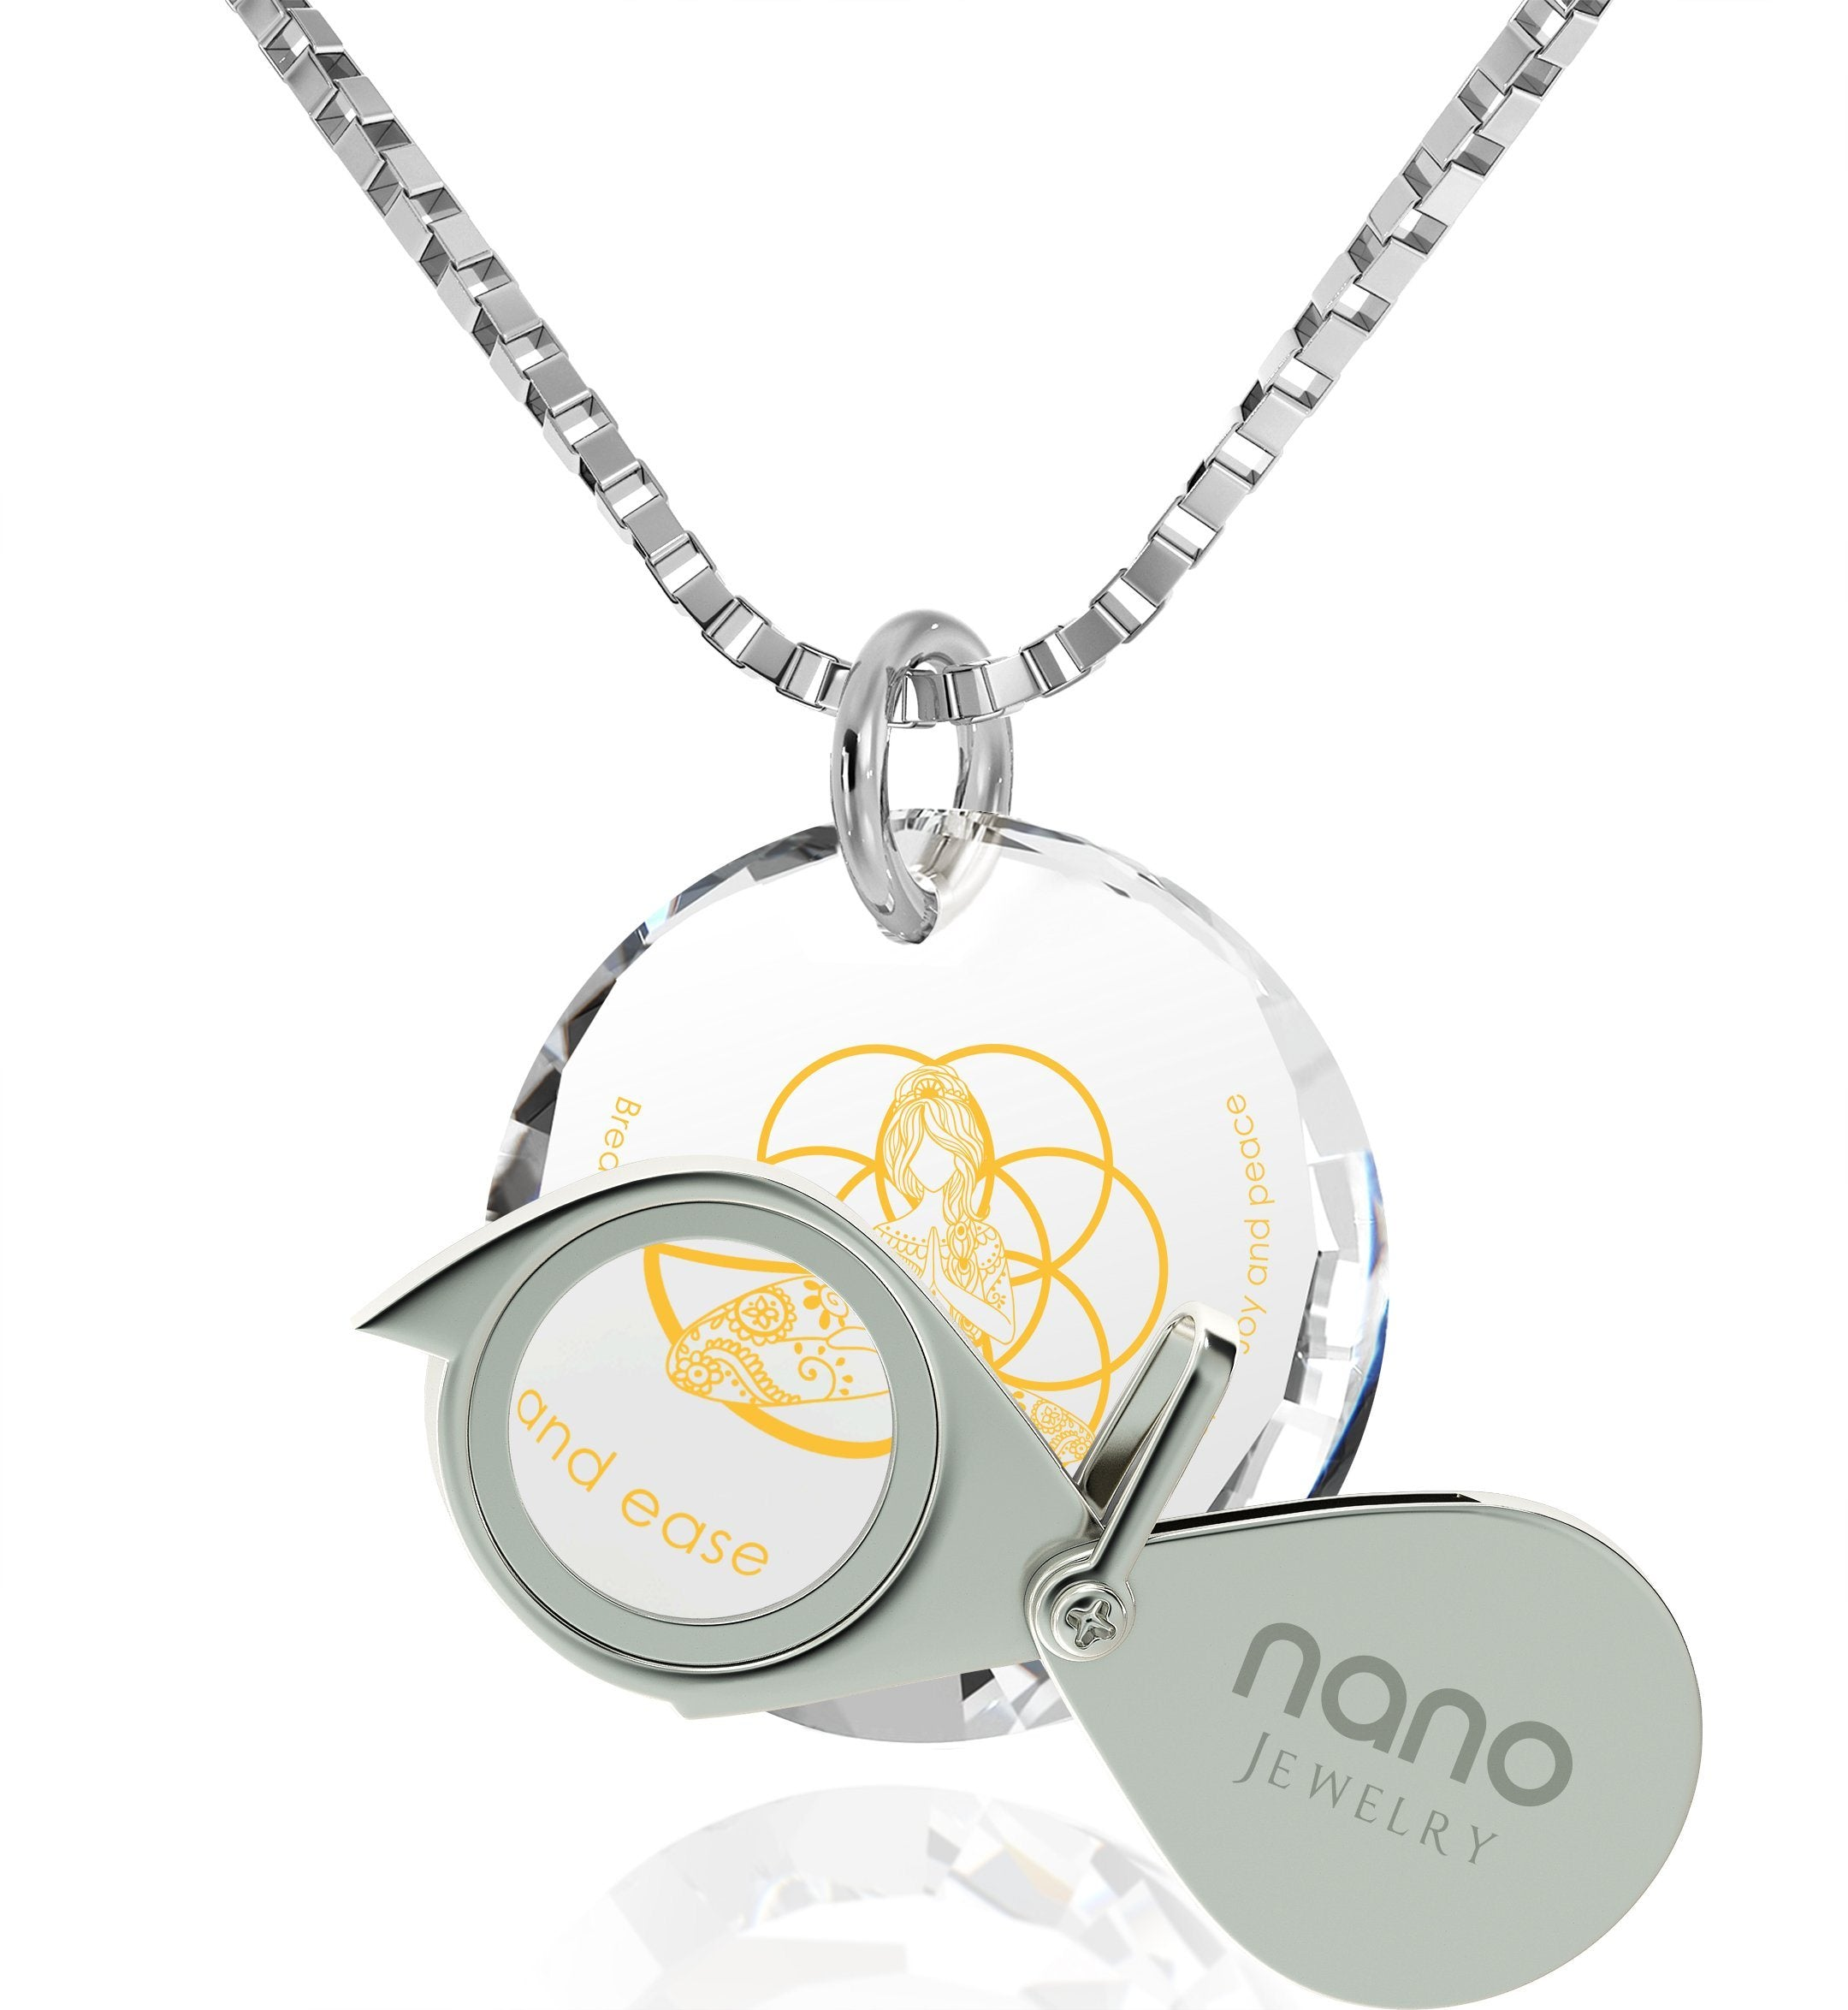 """Breathe in, Breathe out"" Engraved in 24k, Spiritual Jewelry with CZ Stone, Religious Gifts for Women, Nano Jewelry"